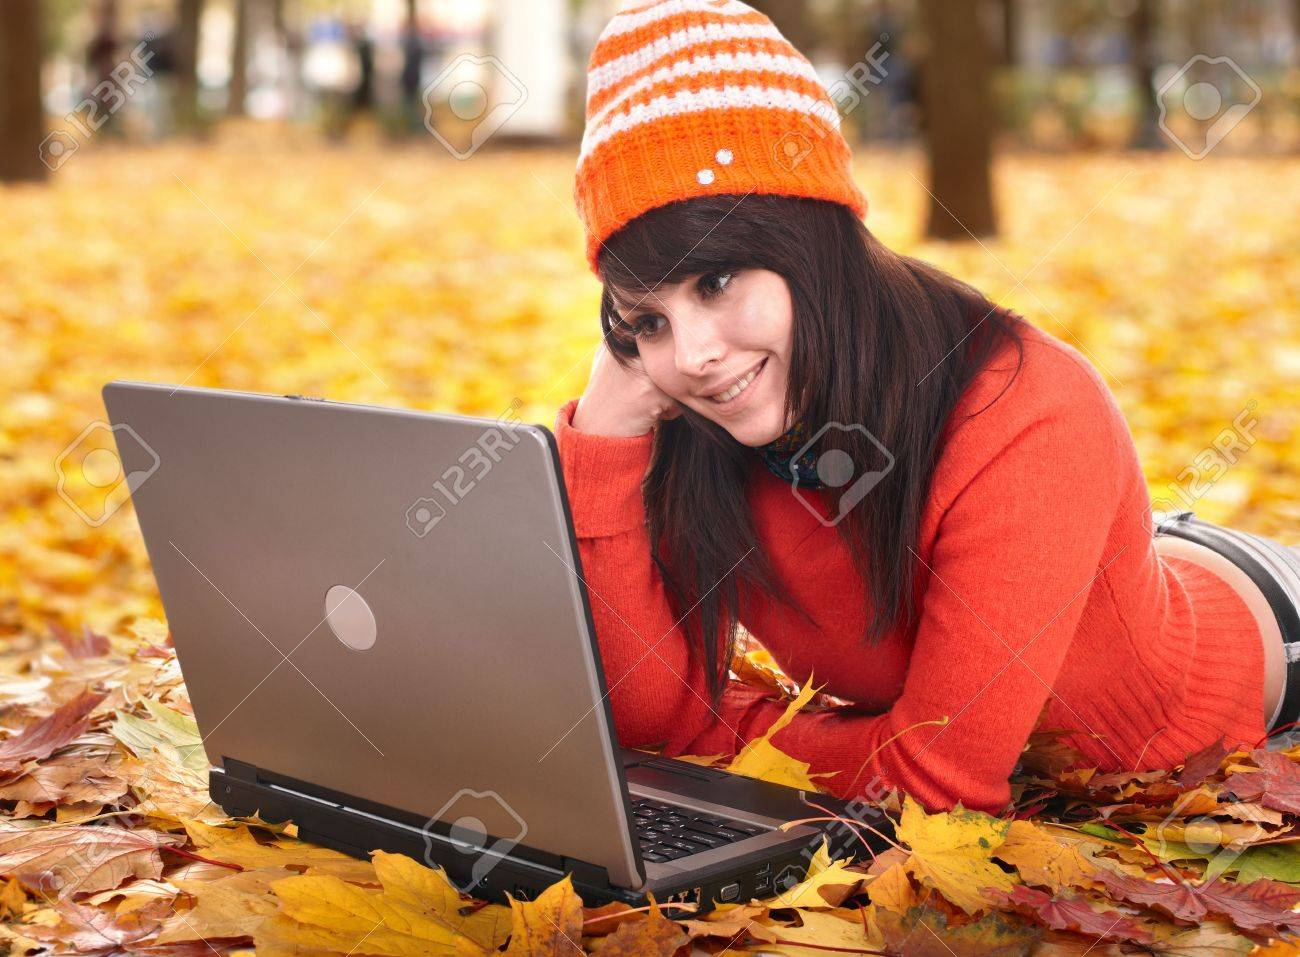 Young woman in autumn orange leaves with laptop. Fall sale. Outdoor. Stock Photo - 7779915